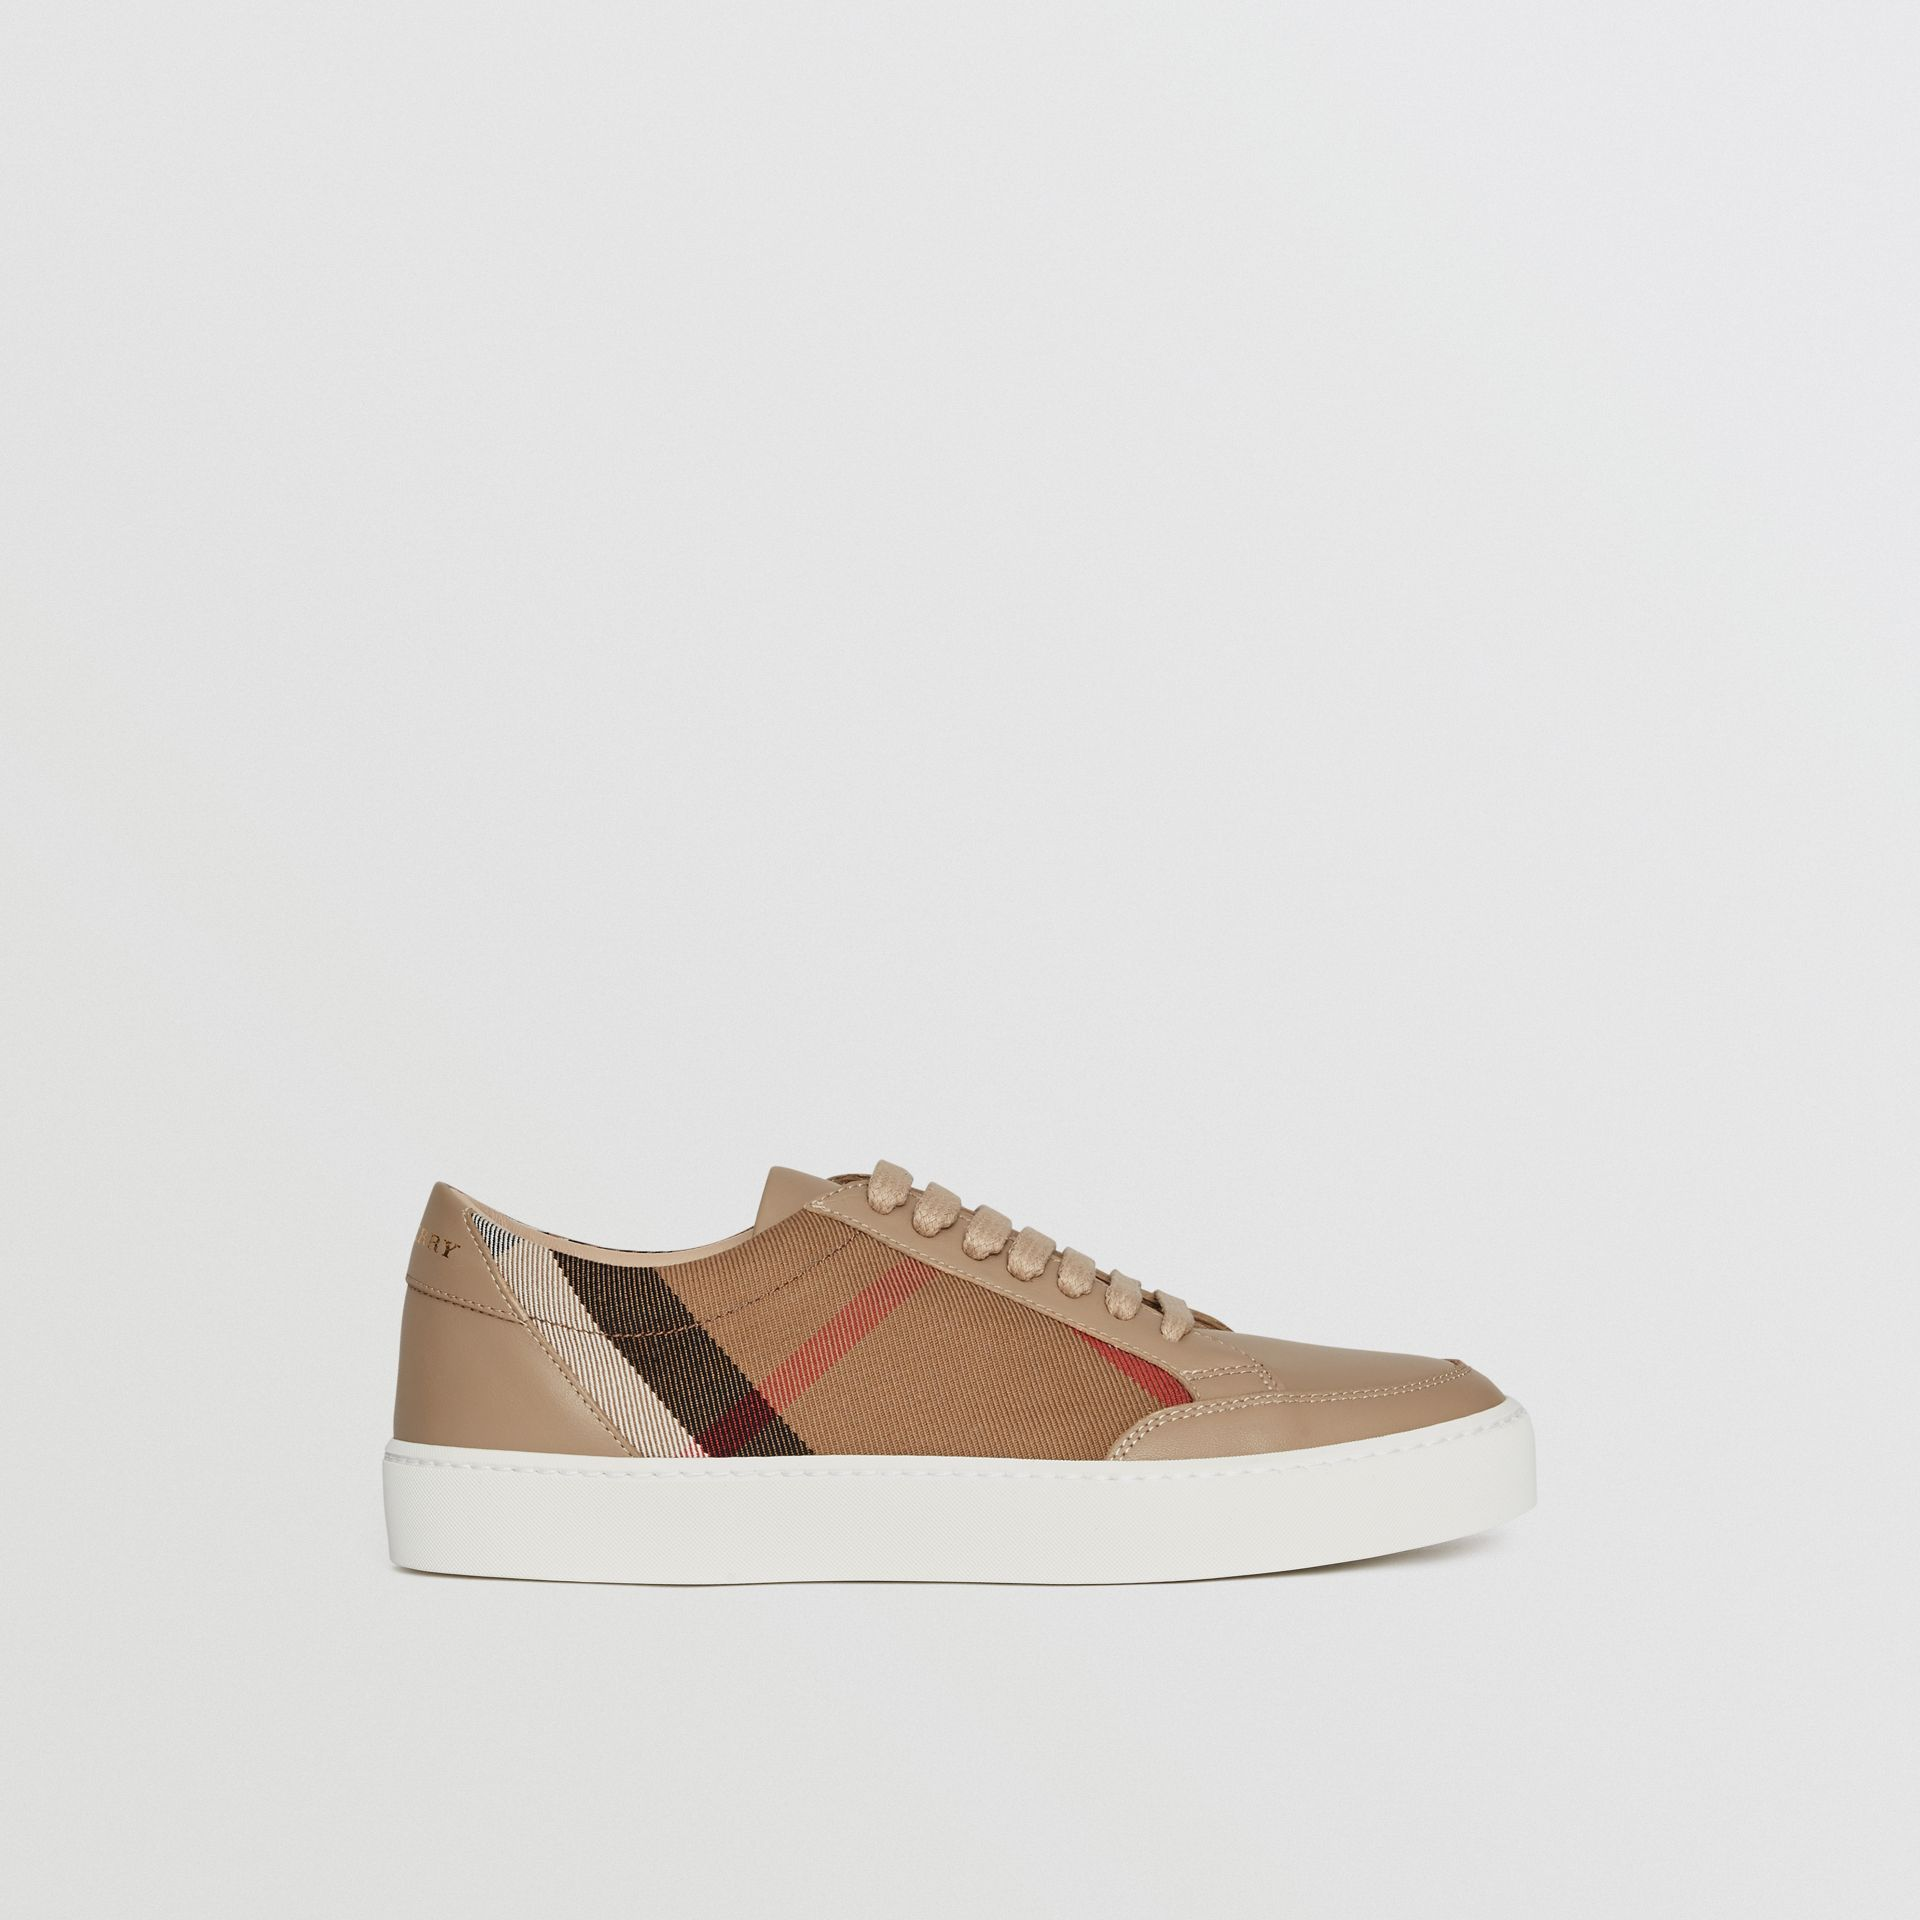 Check Detail Leather Sneakers in House Check/ Nude - Women | Burberry Australia - gallery image 5